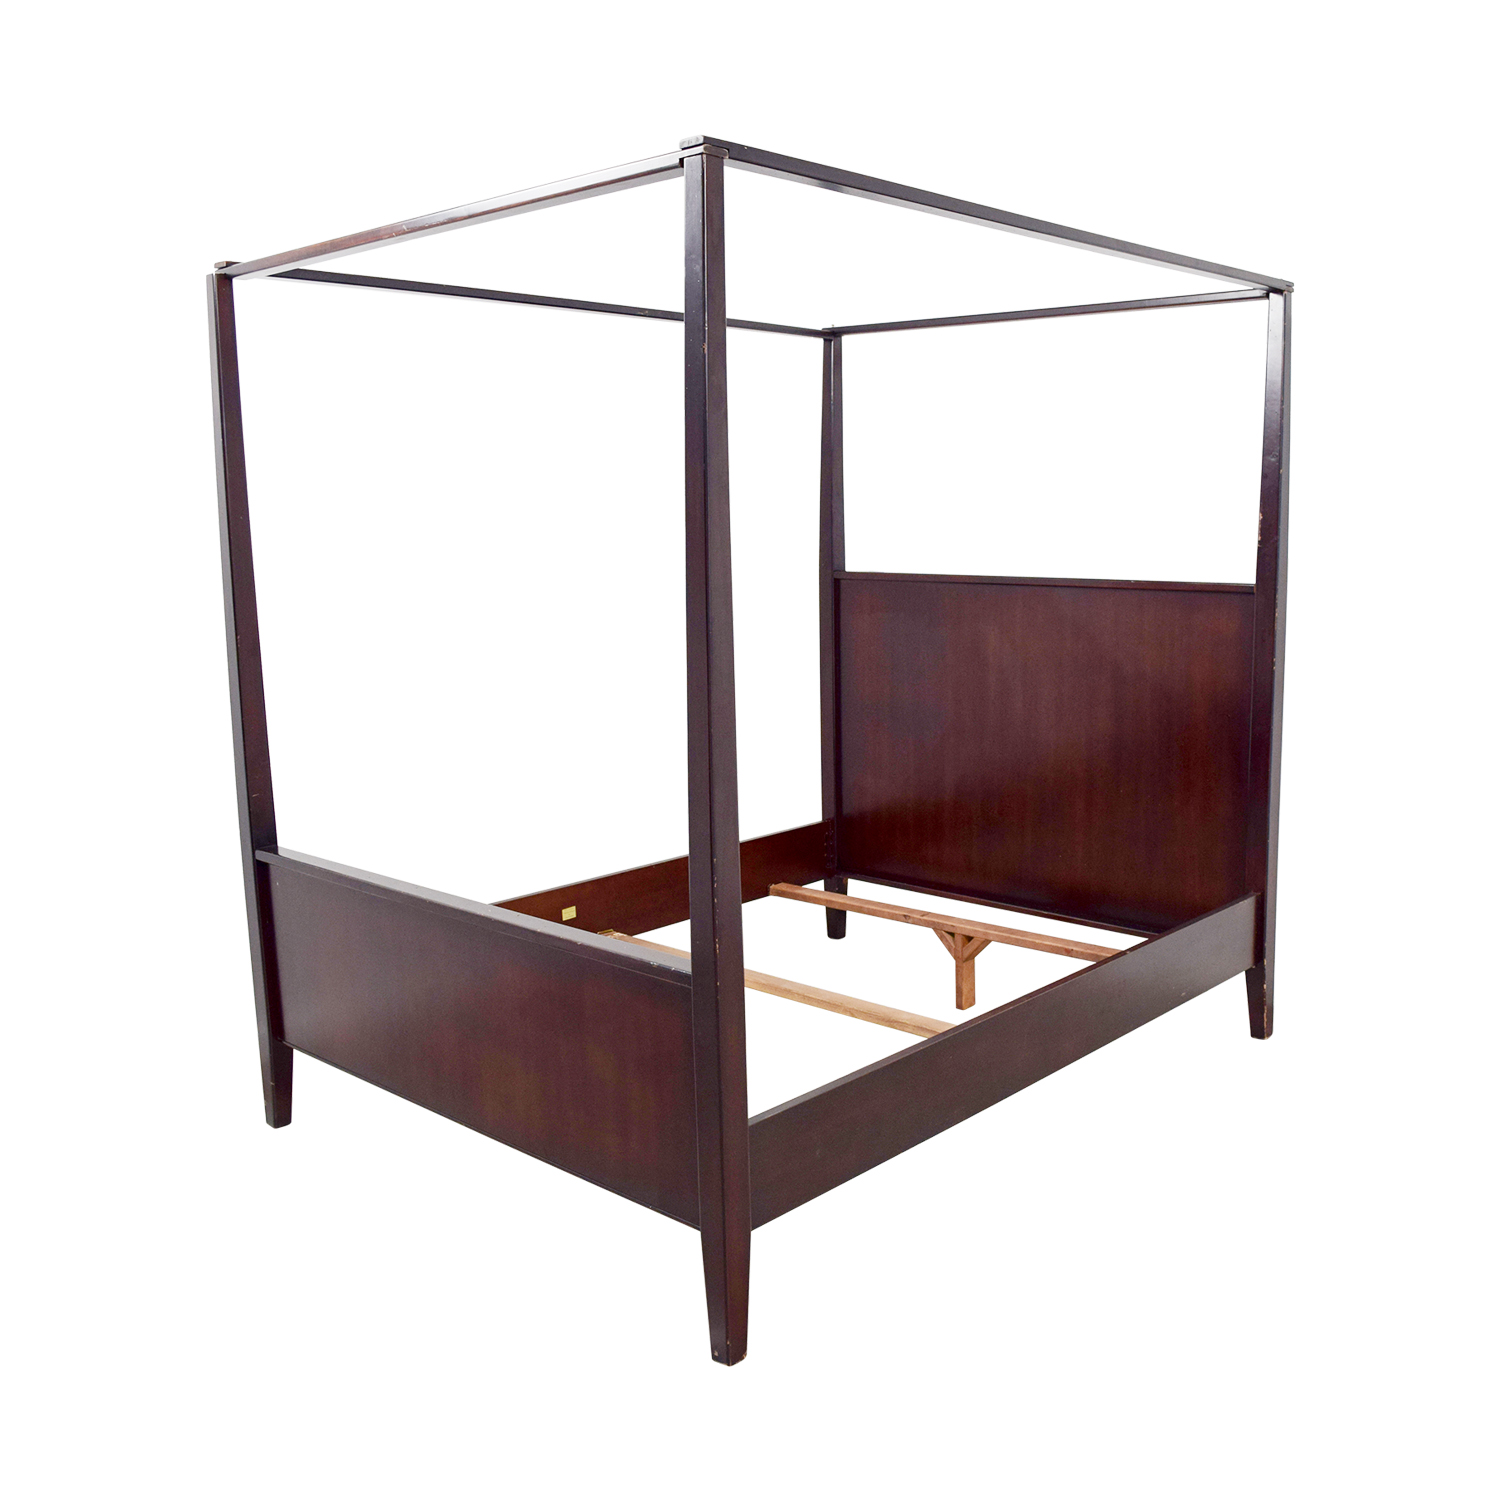 88% OFF - Crate & Barrel Crate & Barrel Queen Four-Poster ...